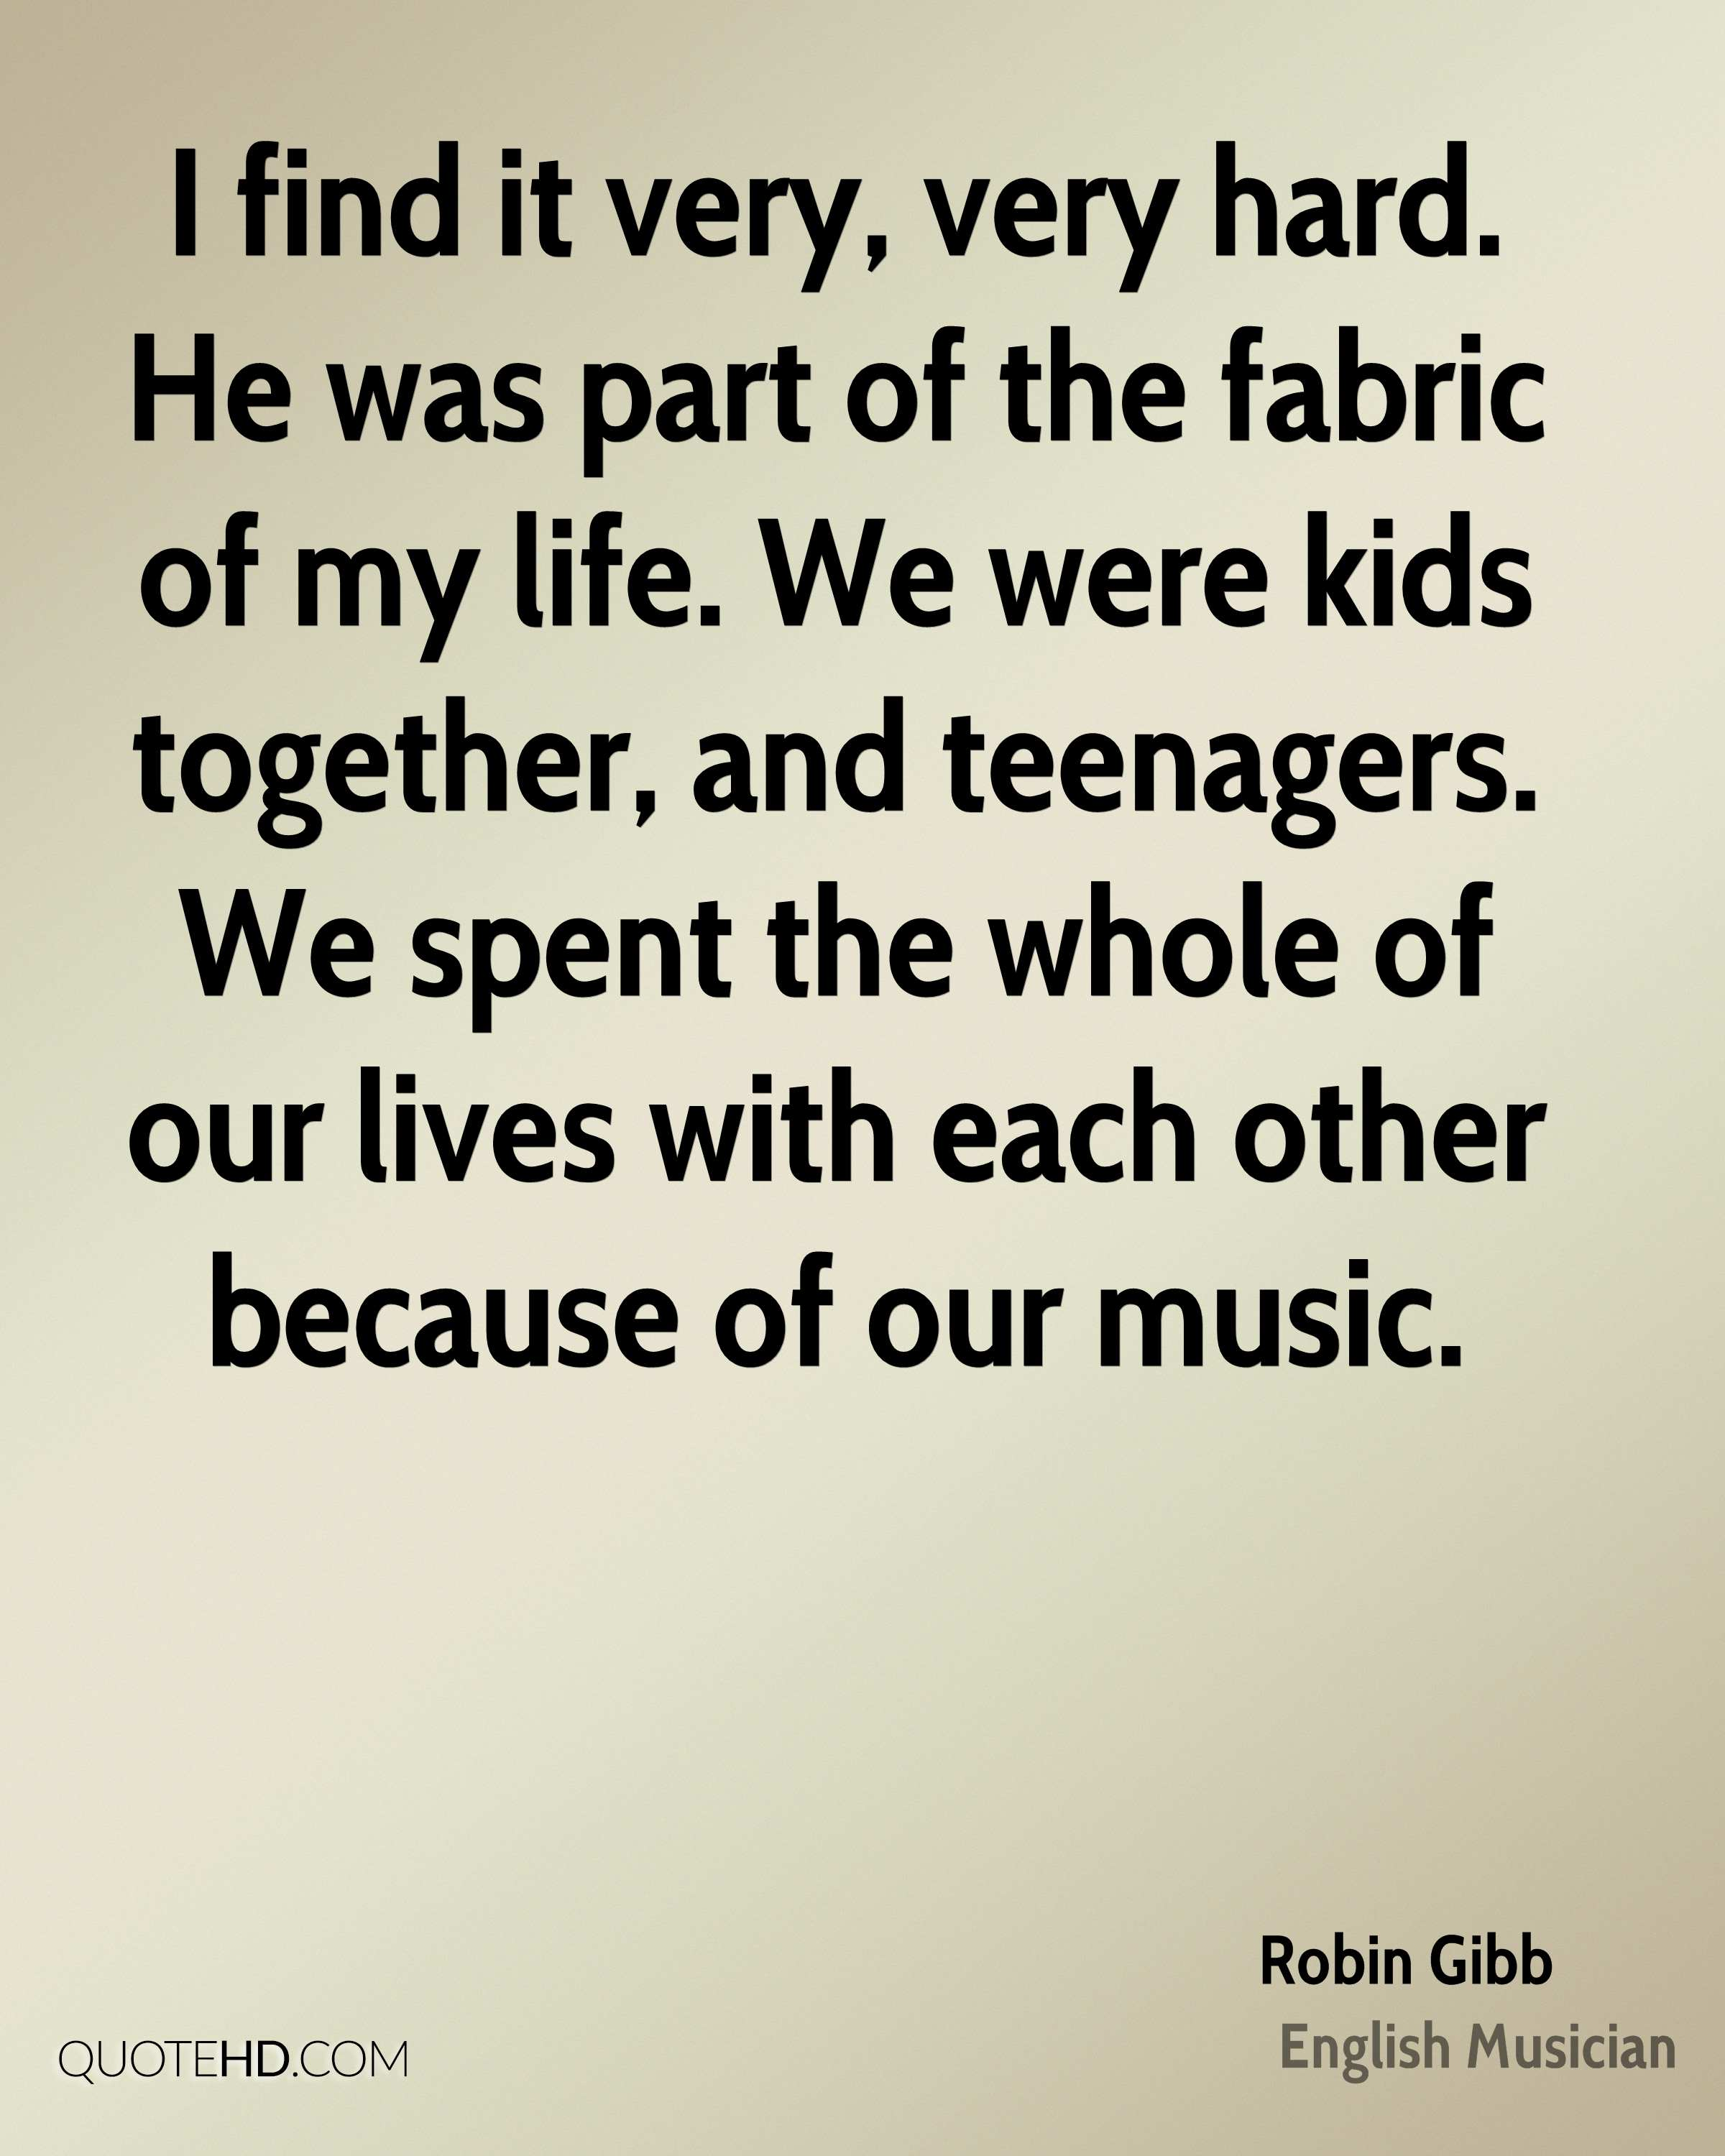 I find it very, very hard. He was part of the fabric of my life. We were kids together, and teenagers. We spent the whole of our lives with each other because of our music.